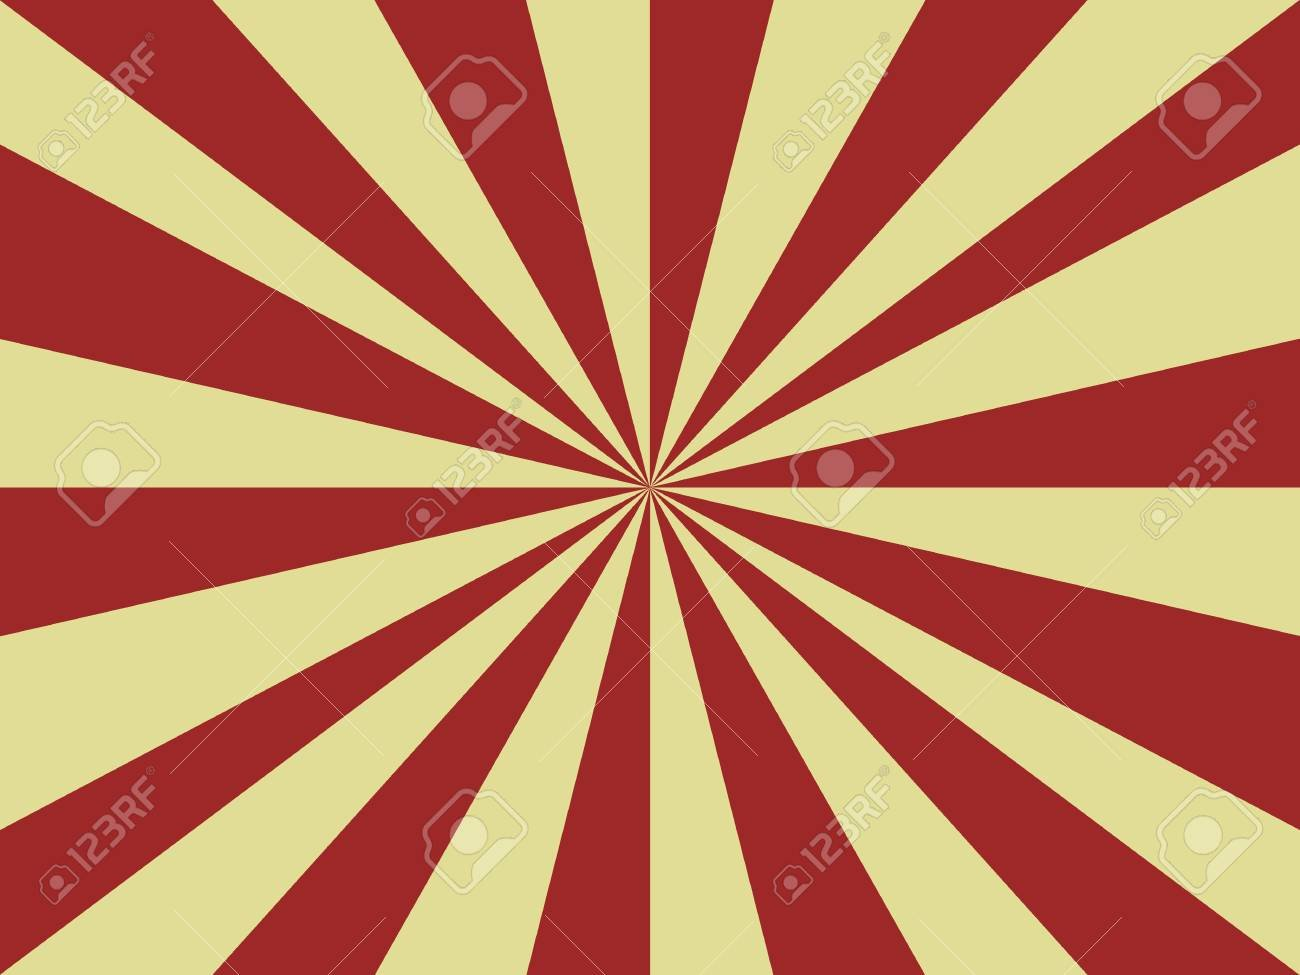 Abstract Basic Simple Background Of Red And Yellow Rays From 1300x975